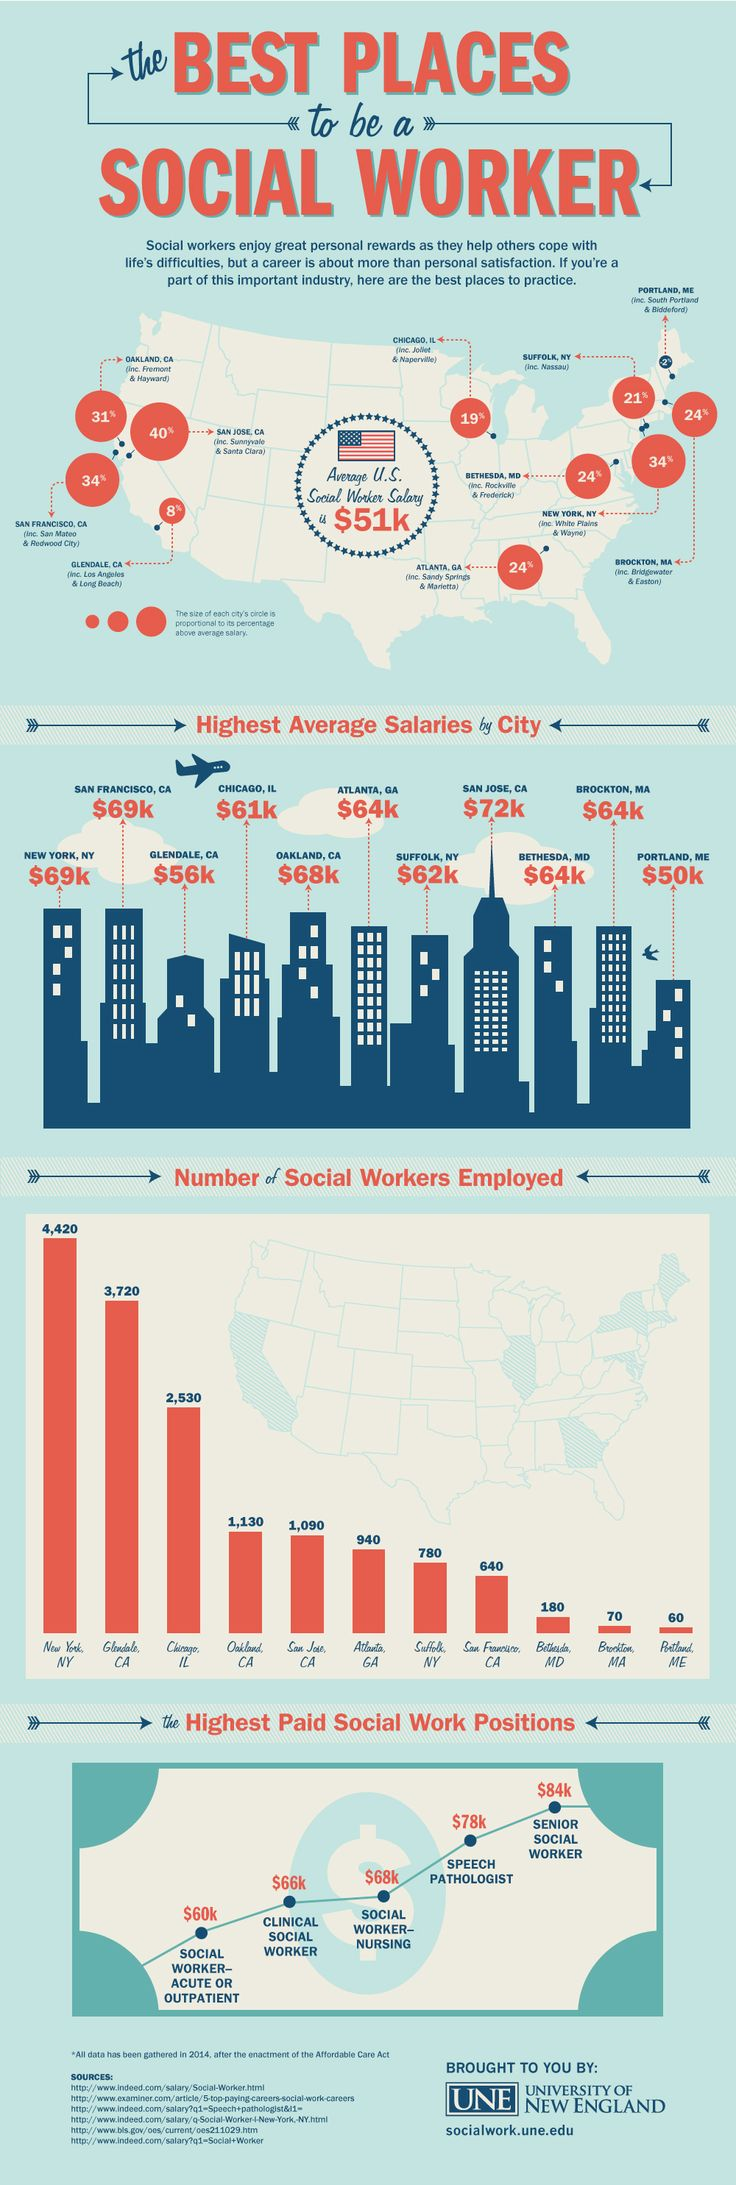 The Best Places to be a Social Worker #infographic #SocialWork #Career